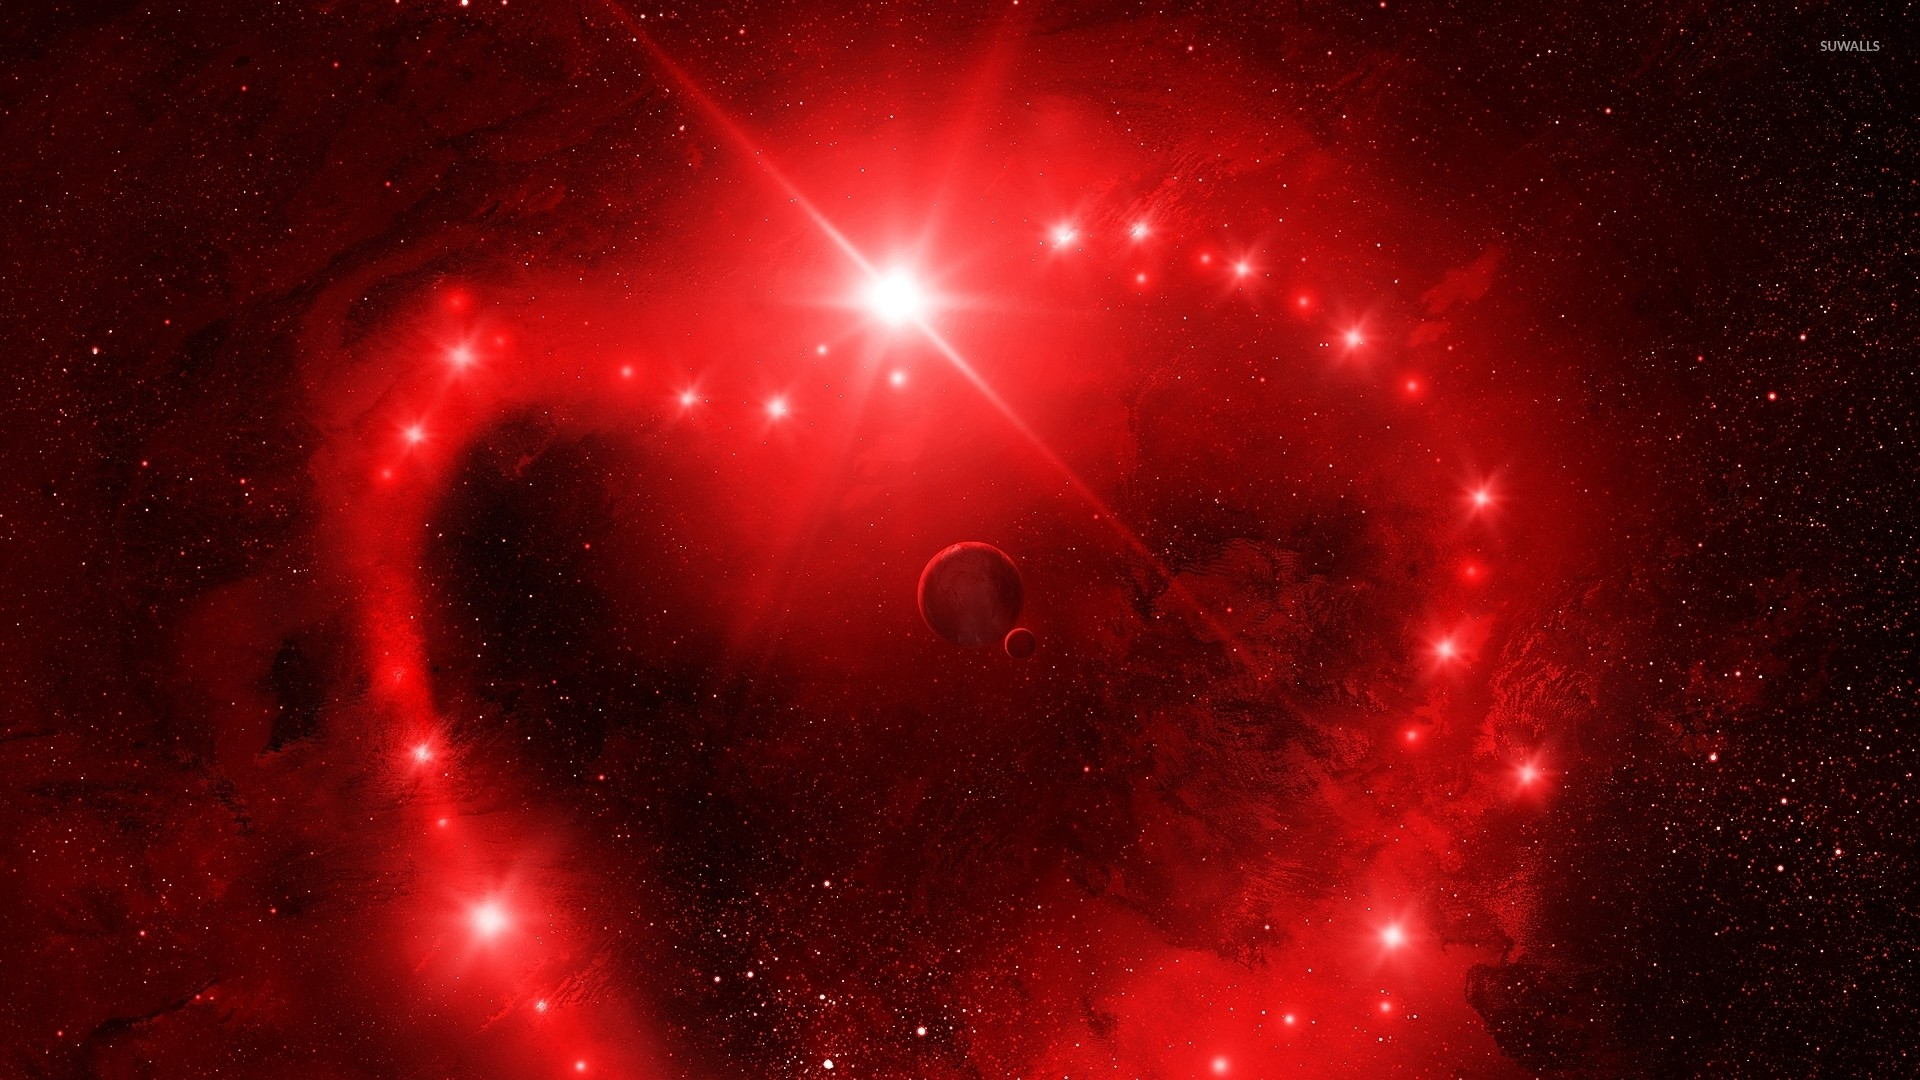 Red heart in space wallpaper